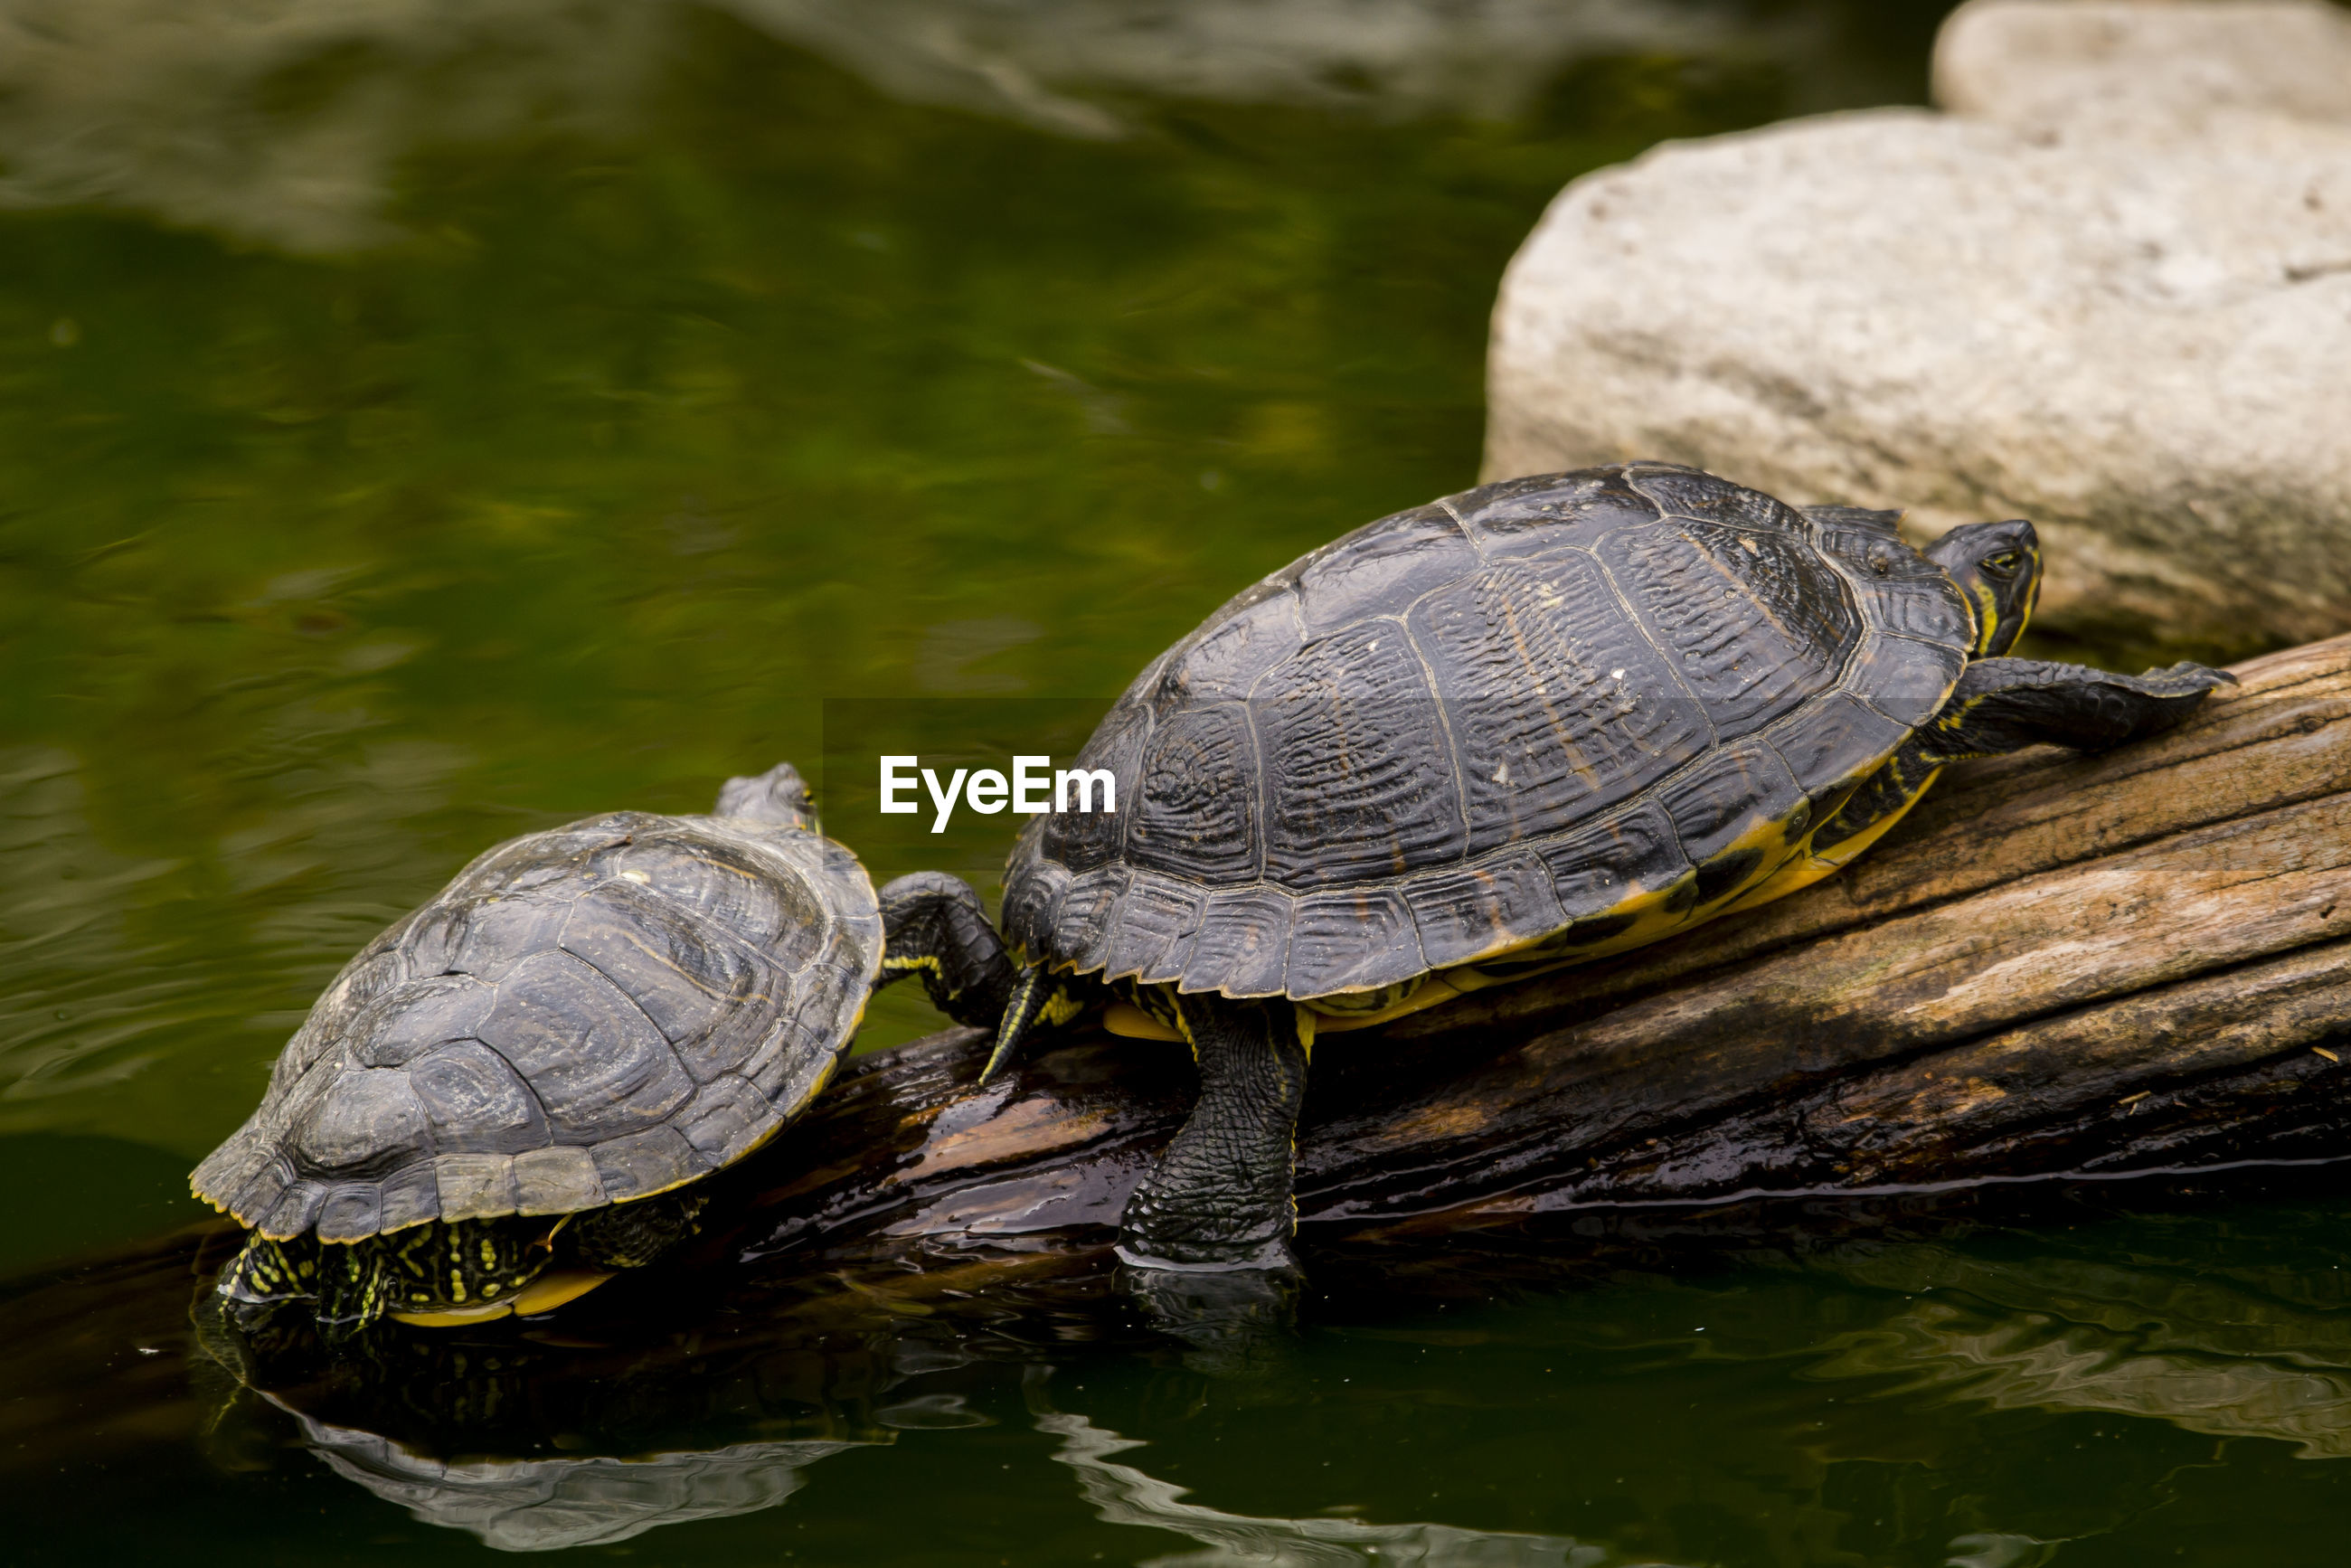 Close-up of tortoise on wood in lake